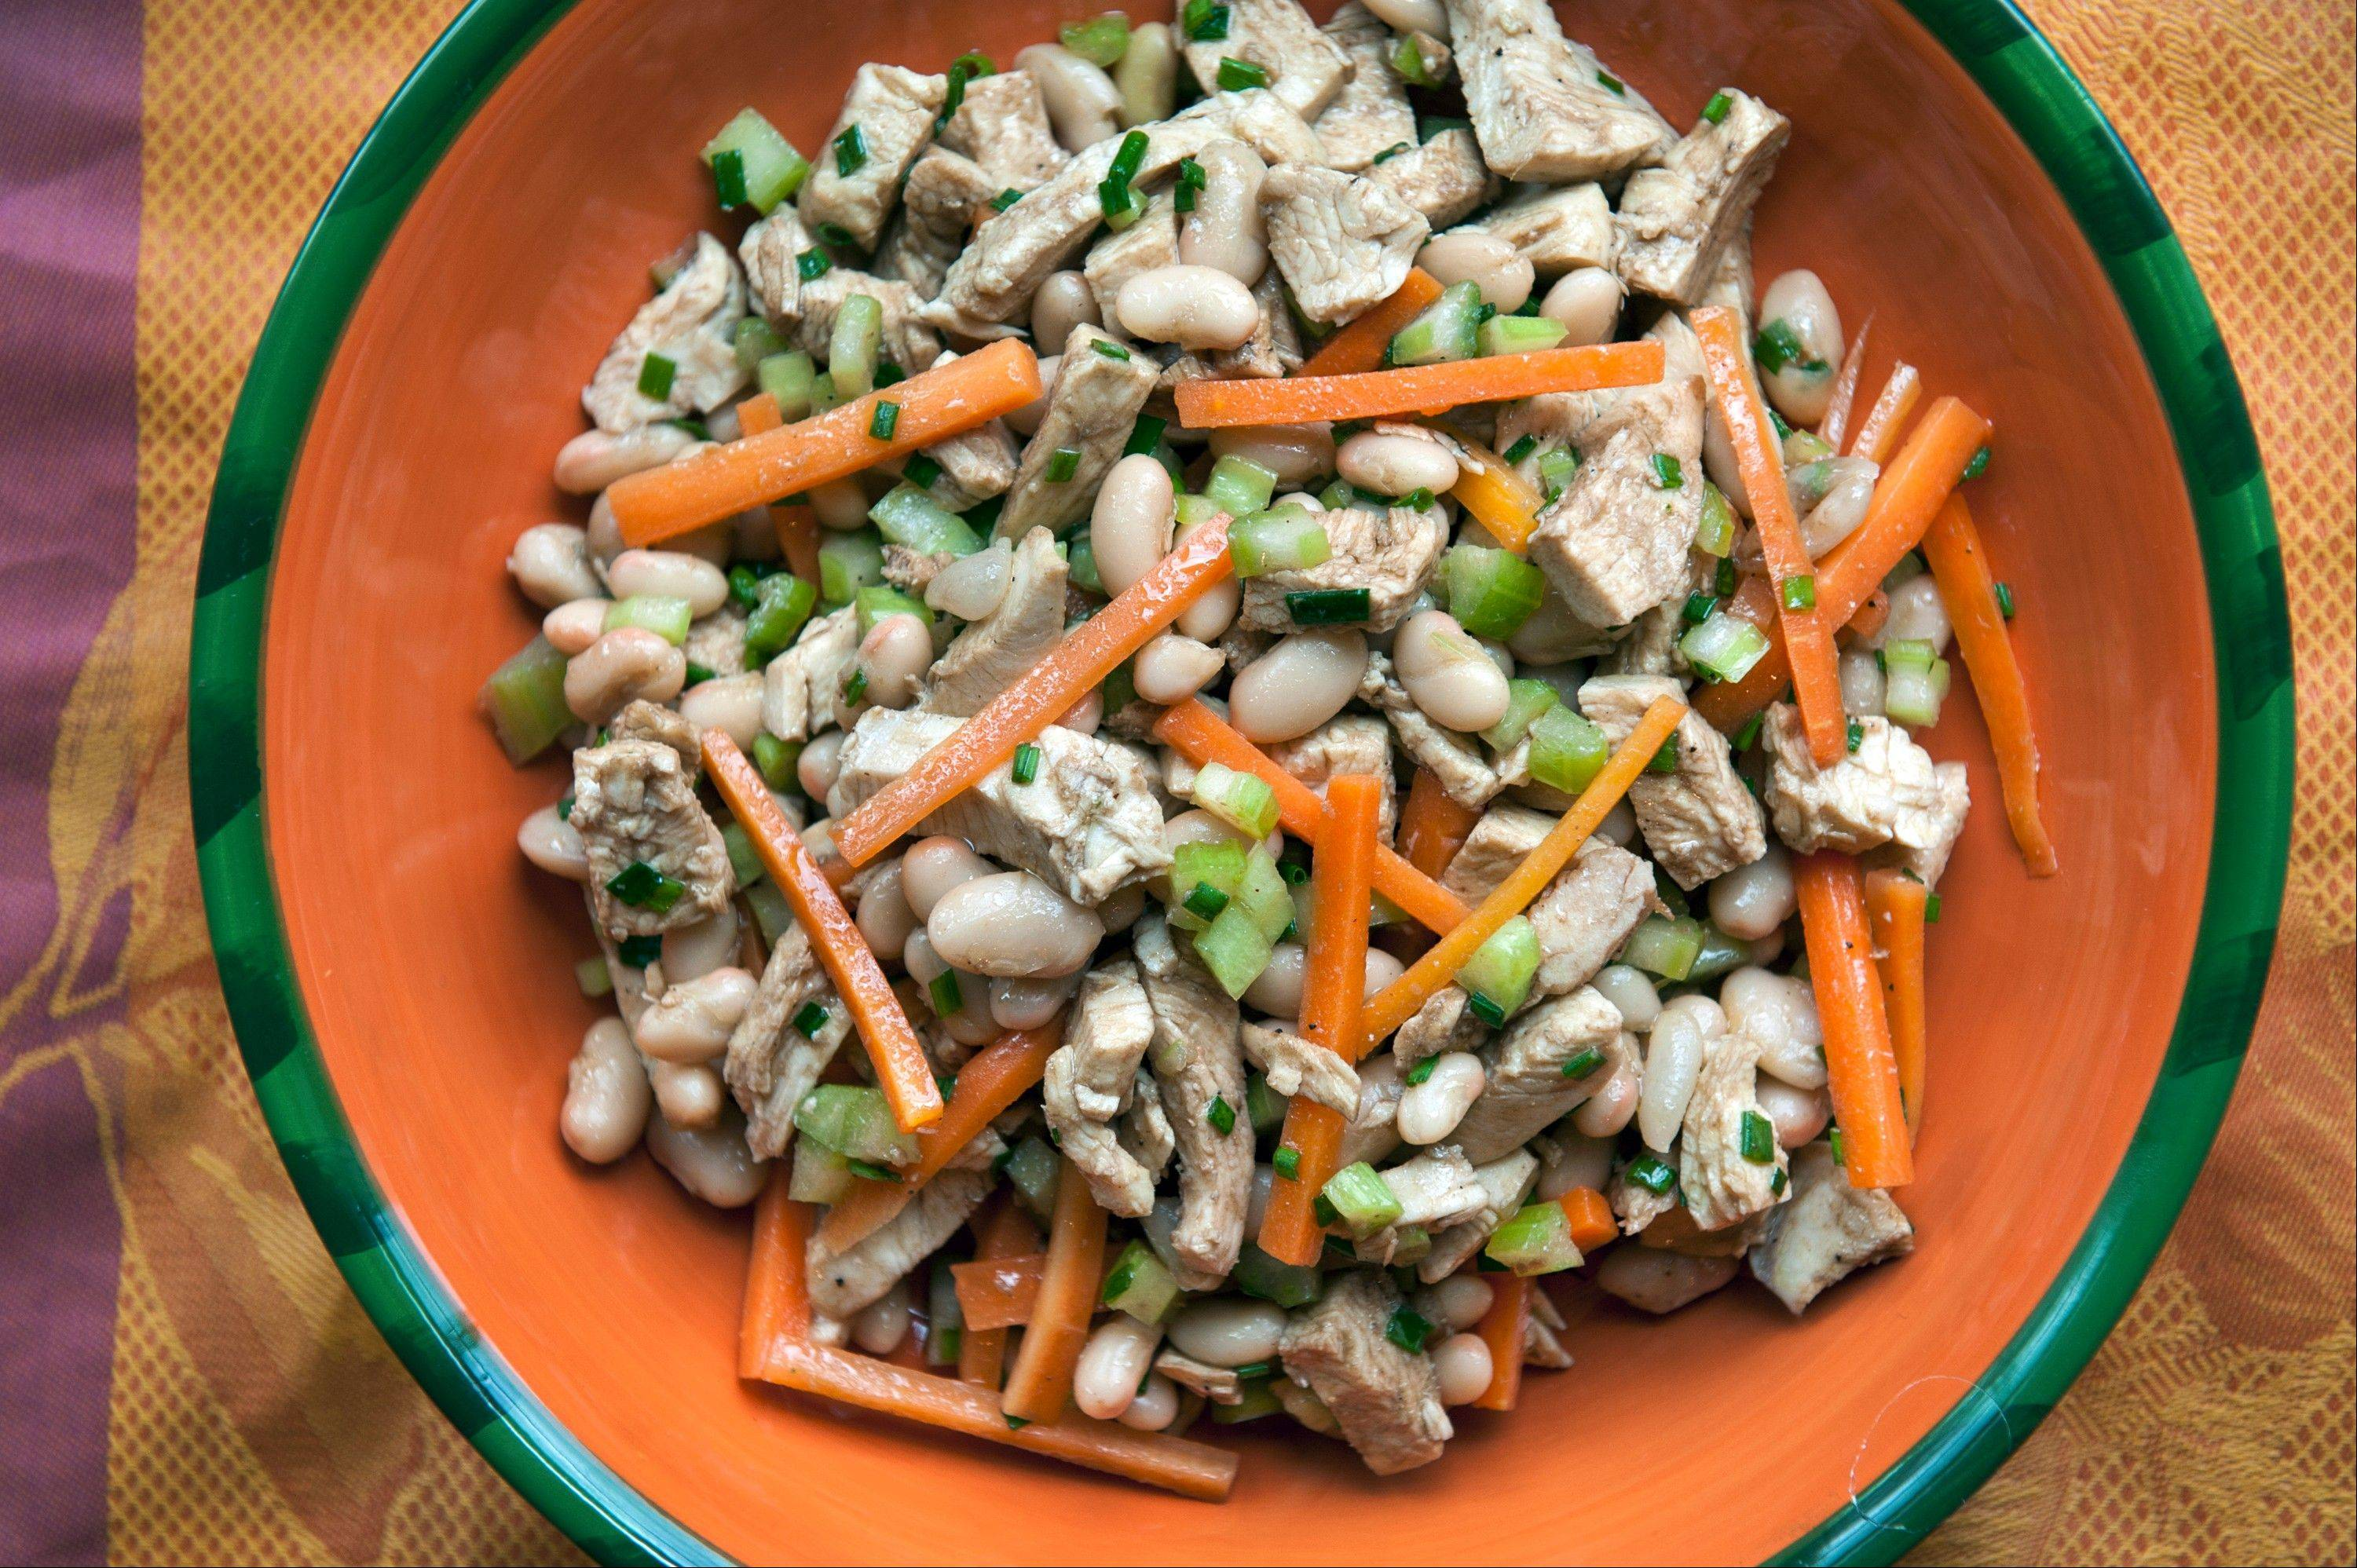 Balsamic Chicken, White Bean and Carrot Salad